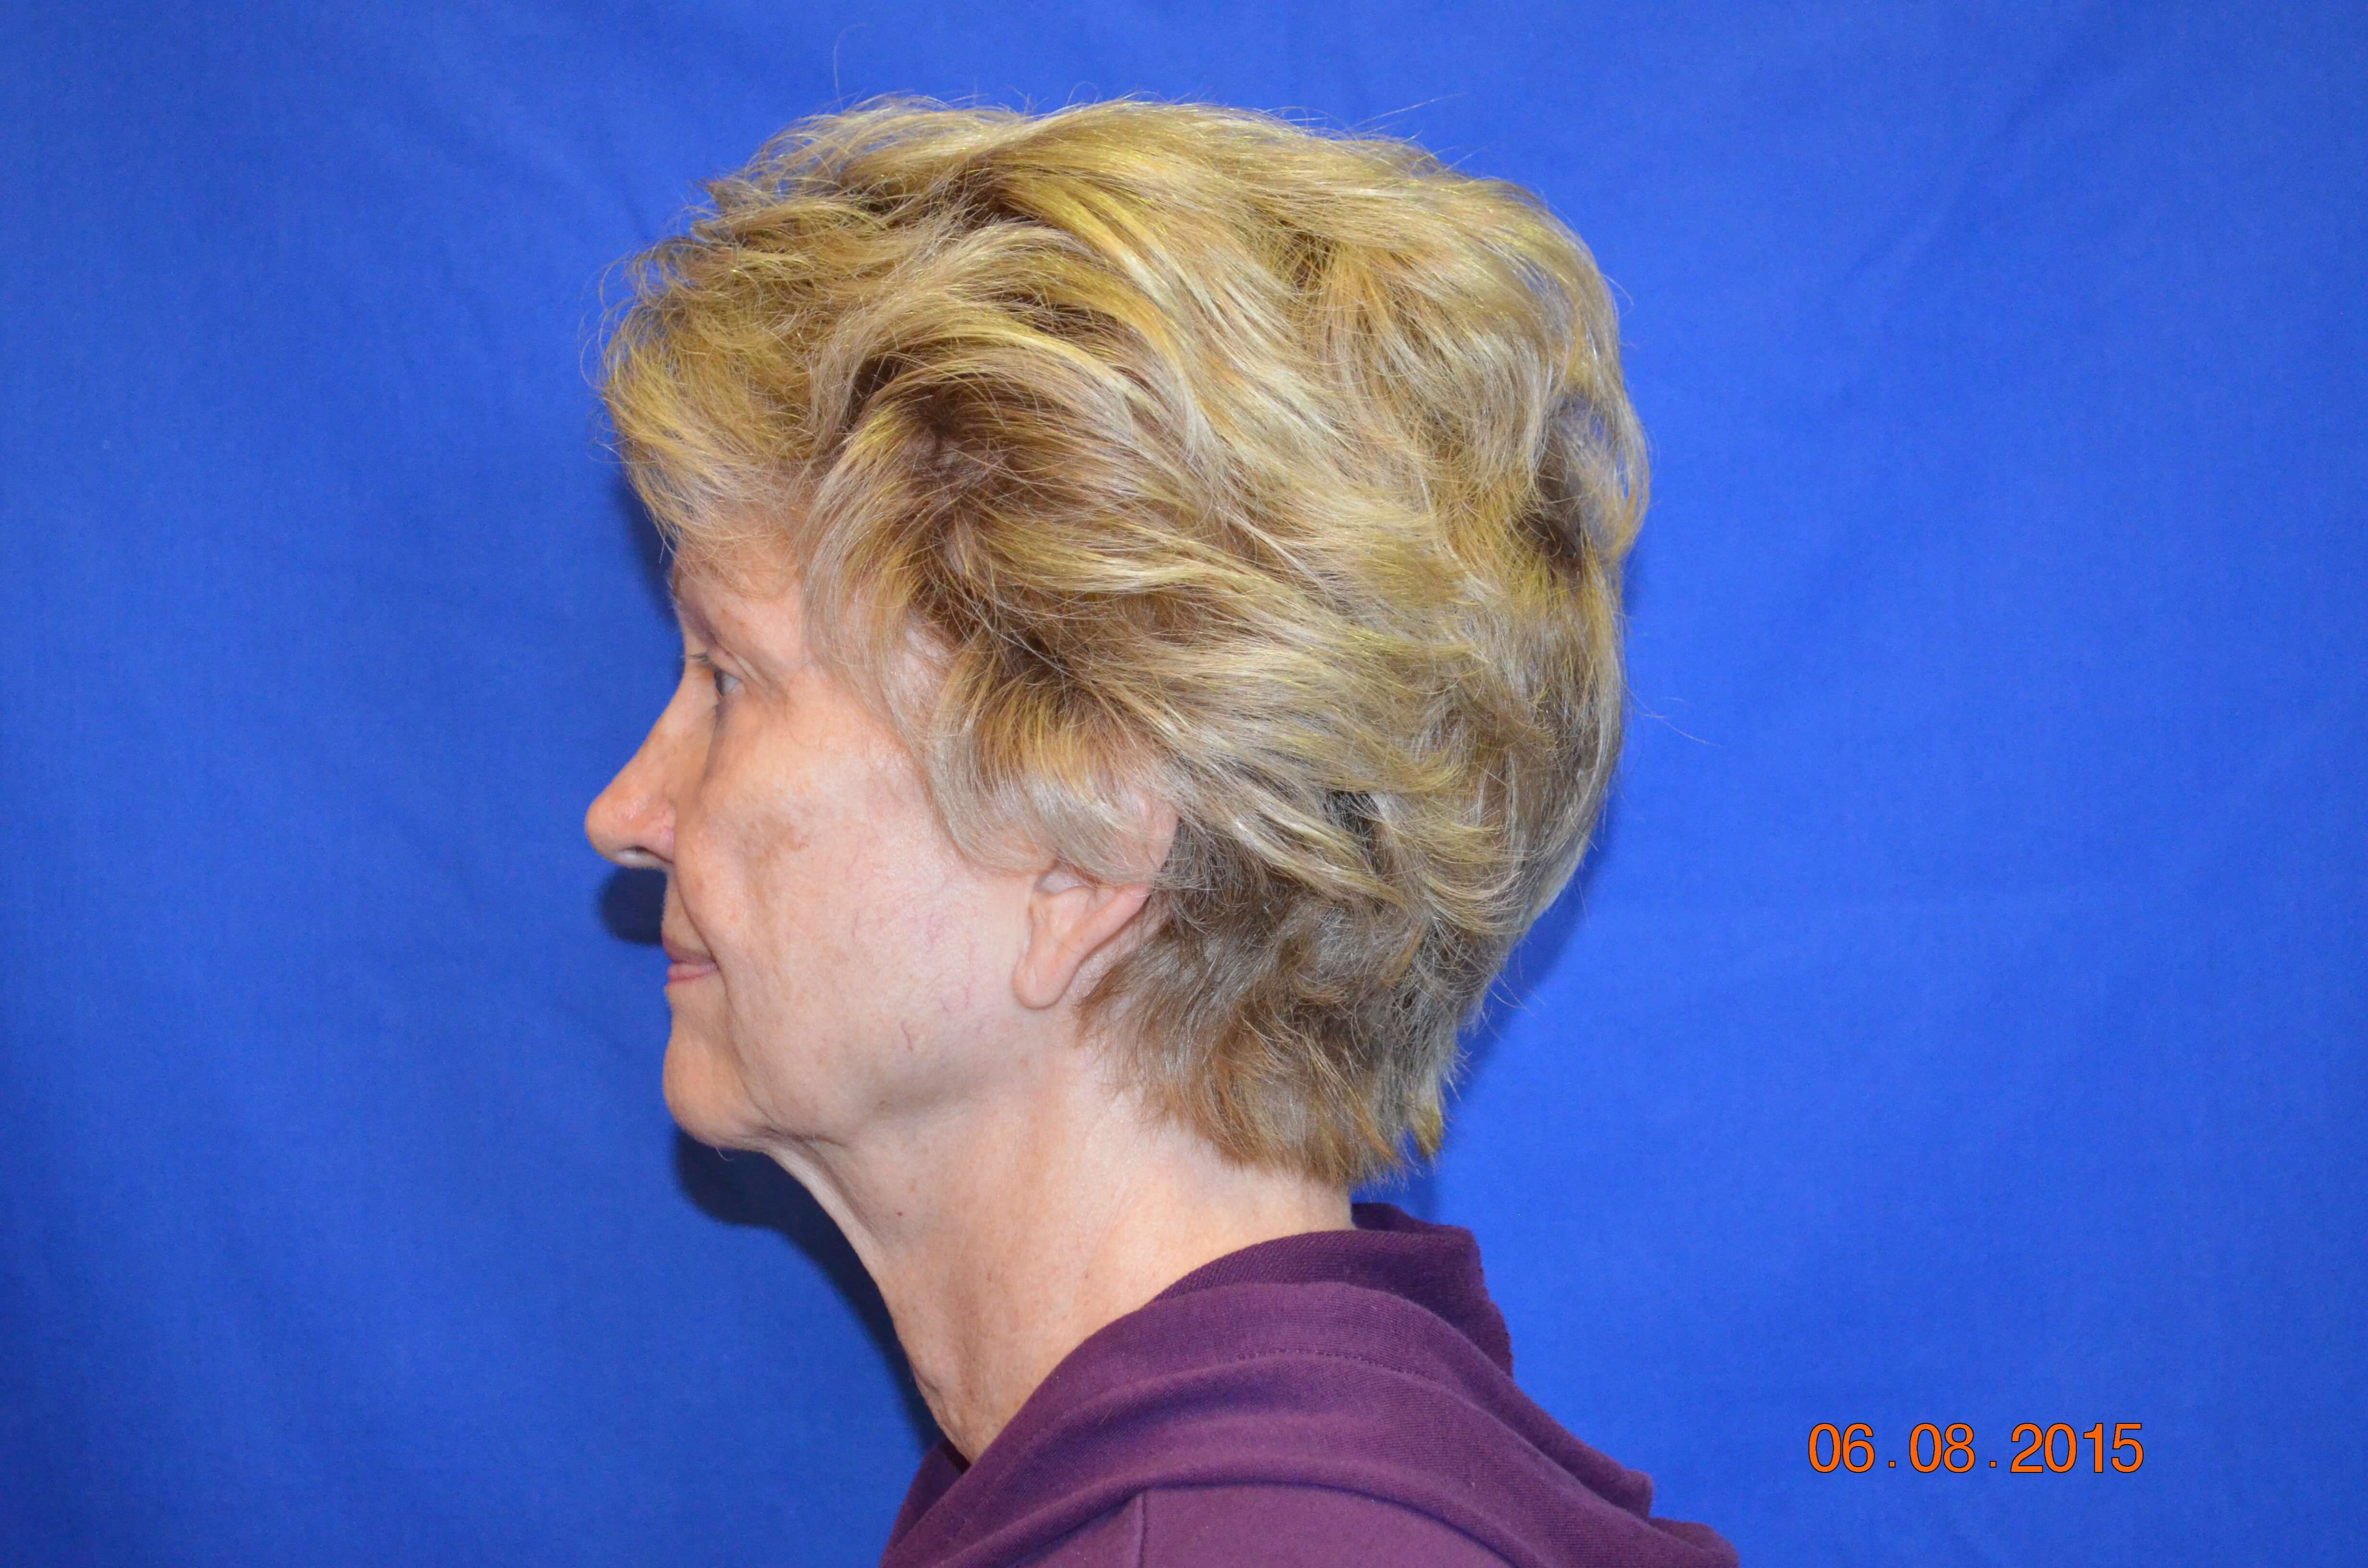 Face/Neck Lift Procedure Before